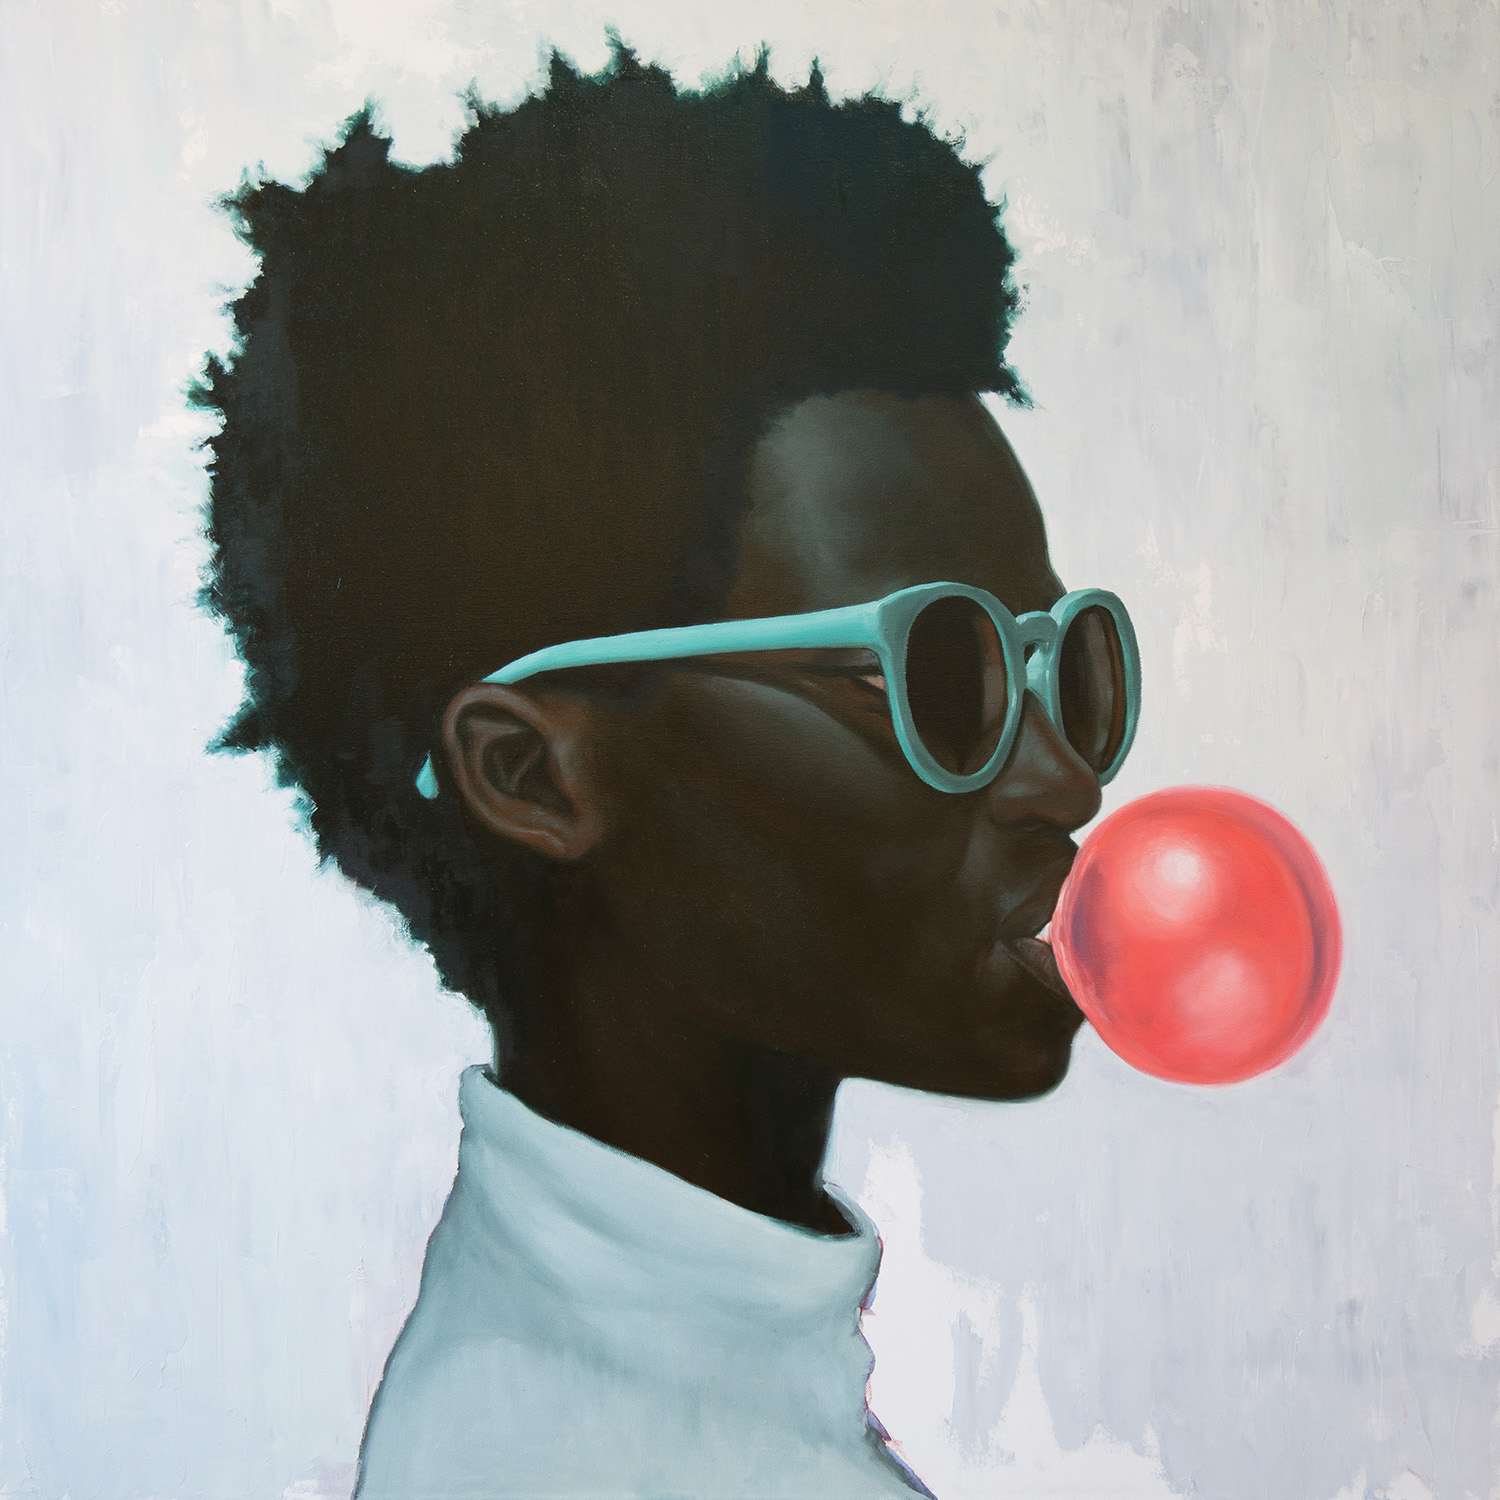 person looking right wearing blue sunglasses blowing a bubble with gum